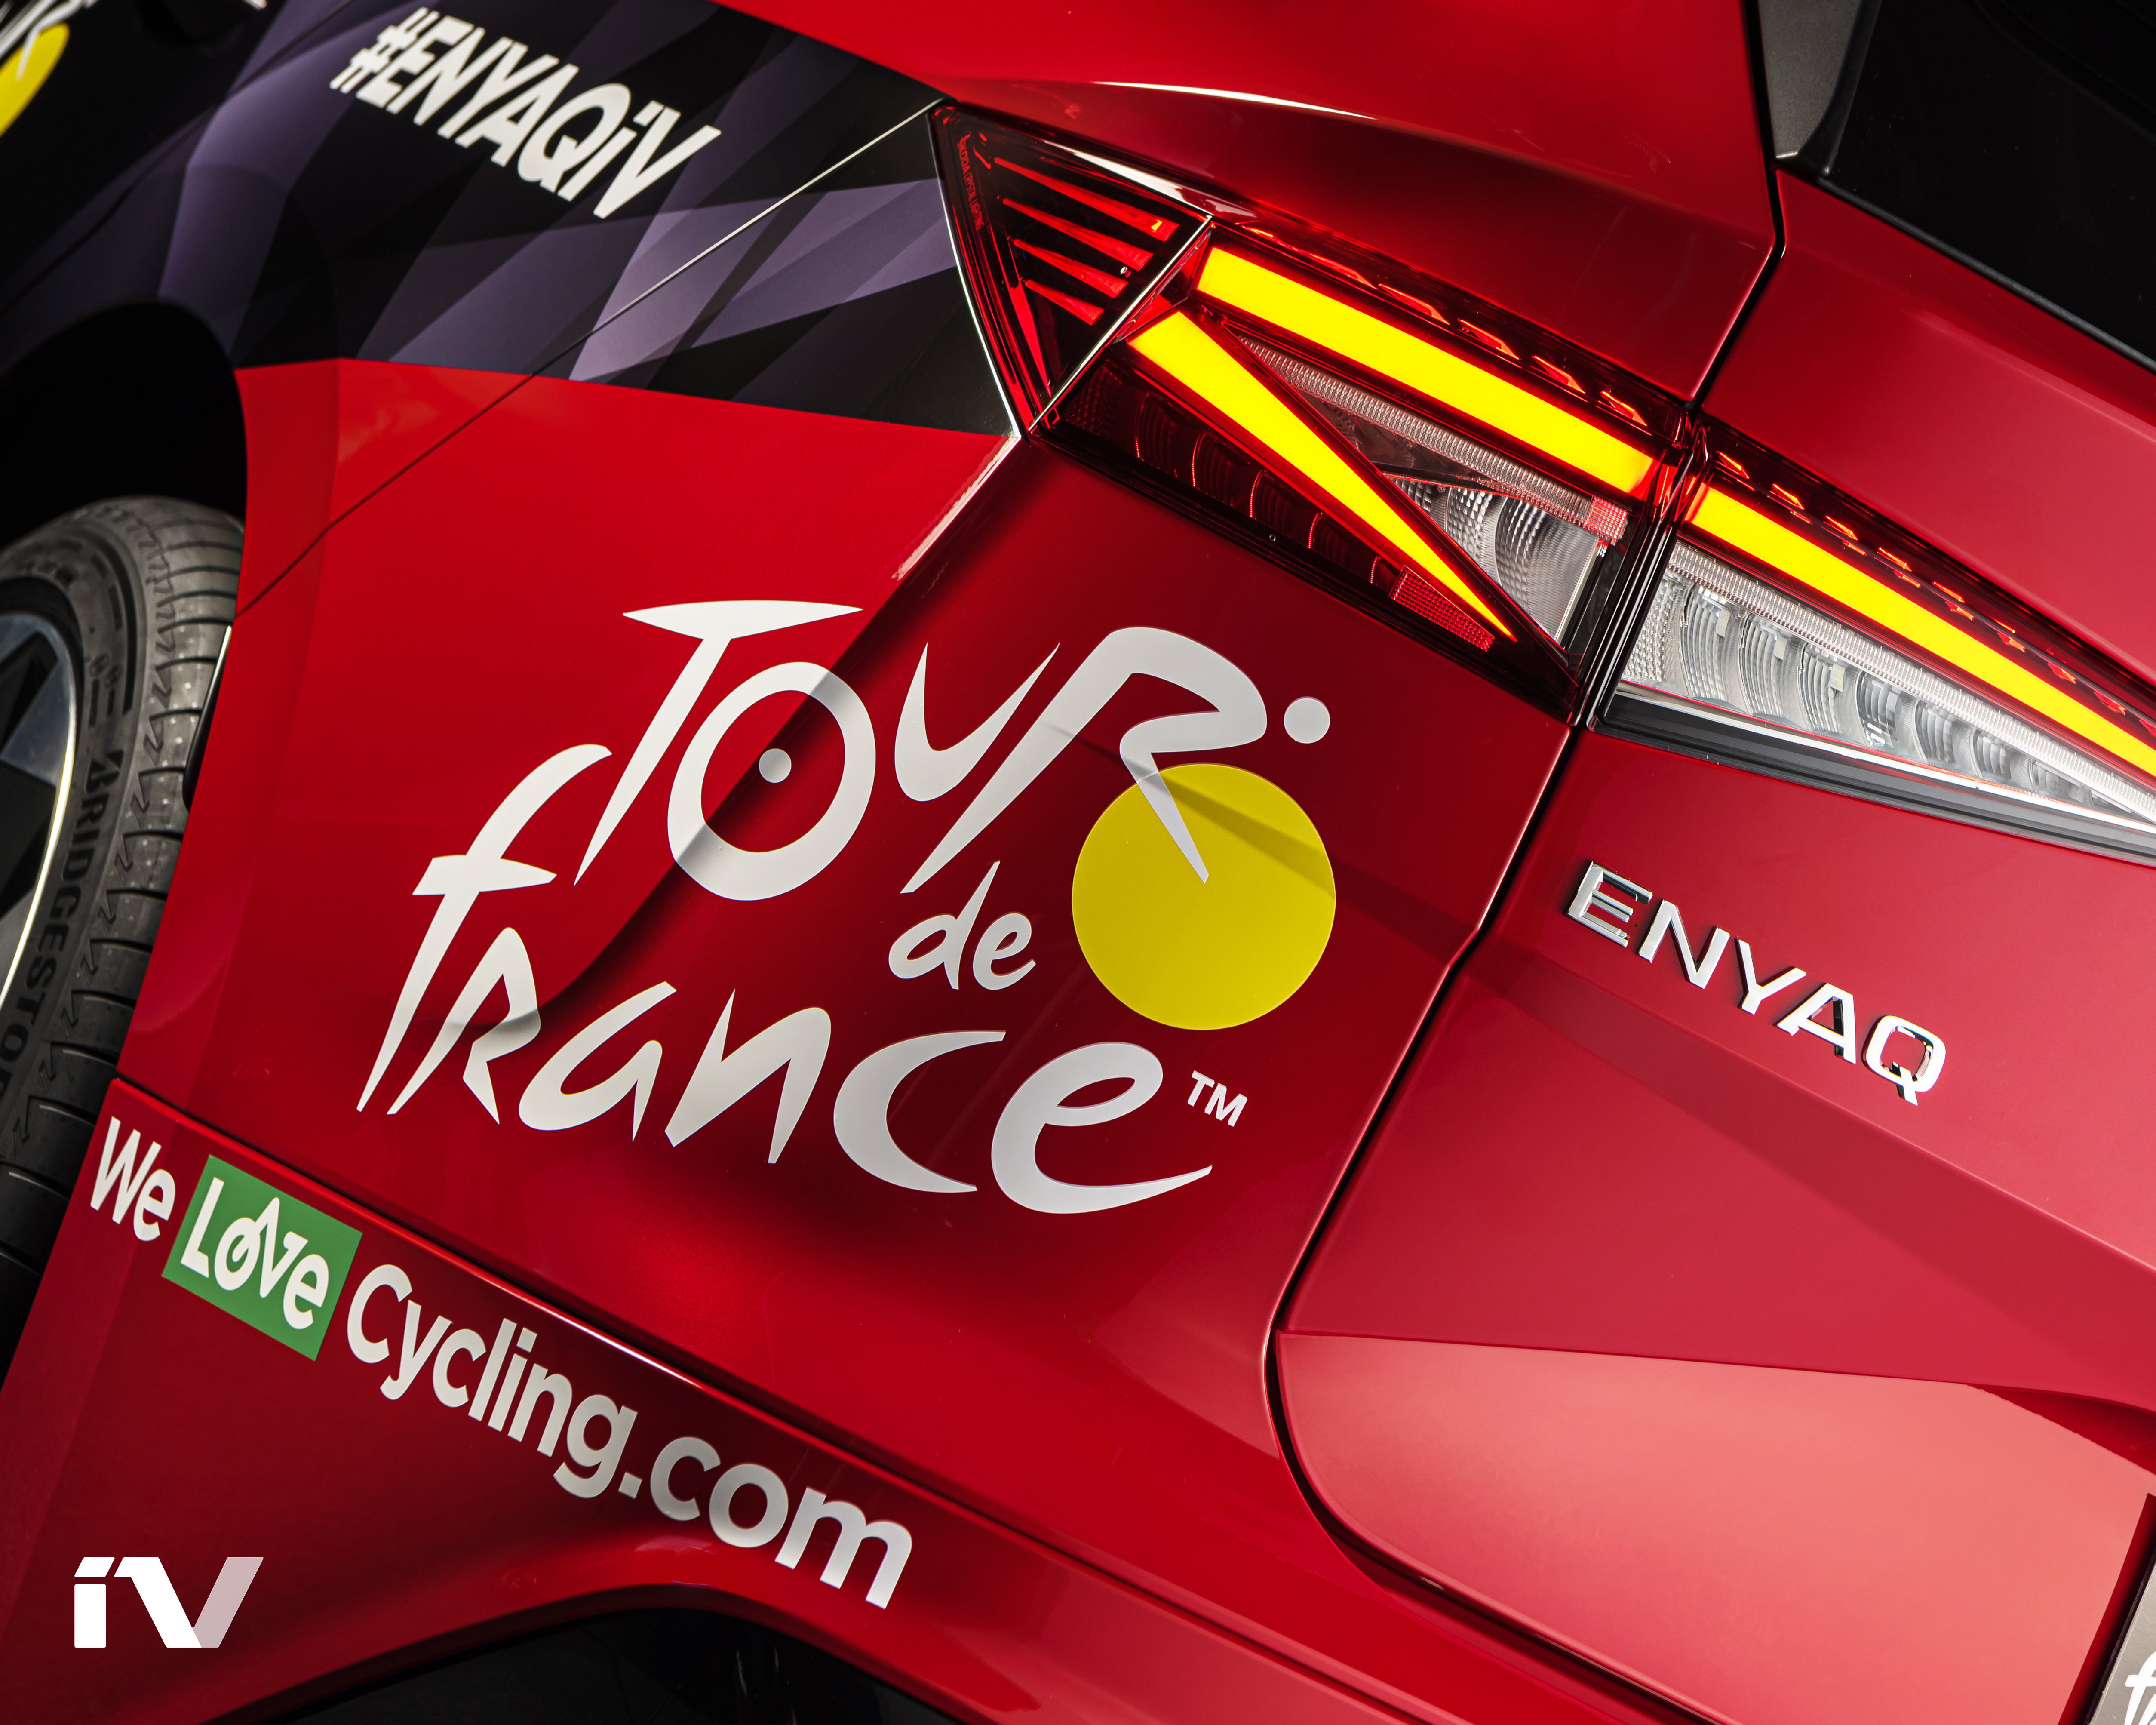 SKODA ENYAQ iV makes its debut as the lead vehicle in the Tour de France - Image 4